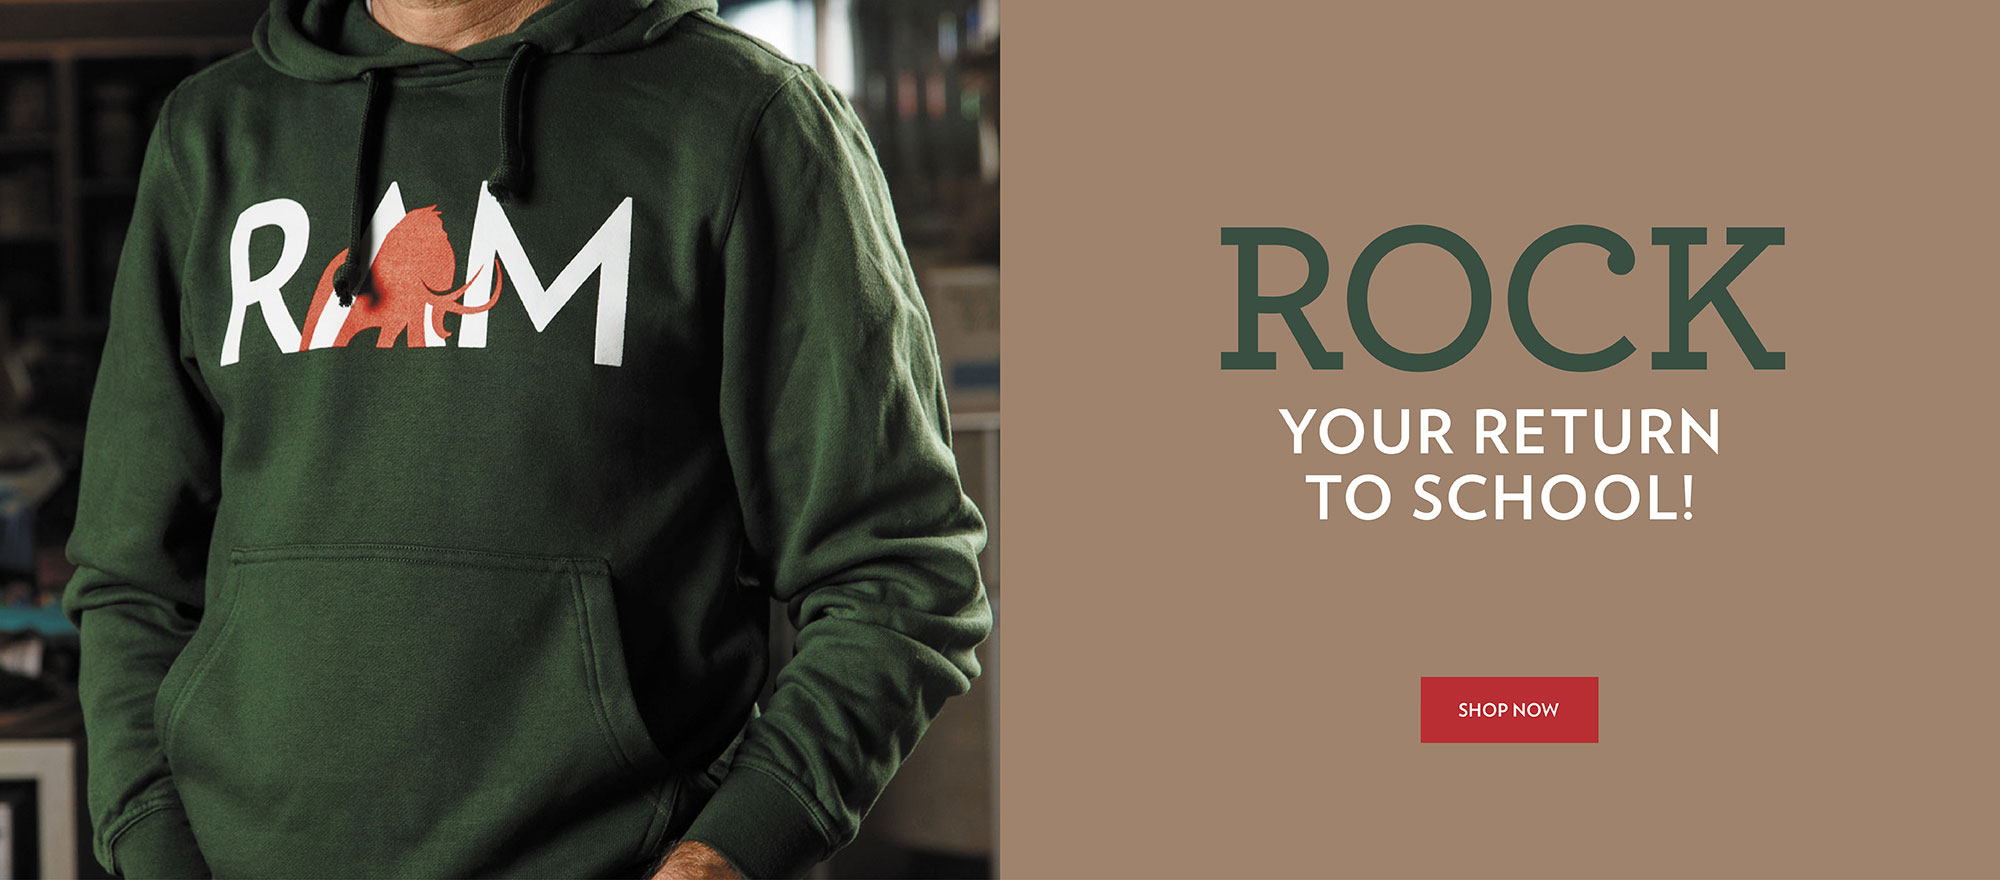 Green hoodie with logo. Rock your return to school.